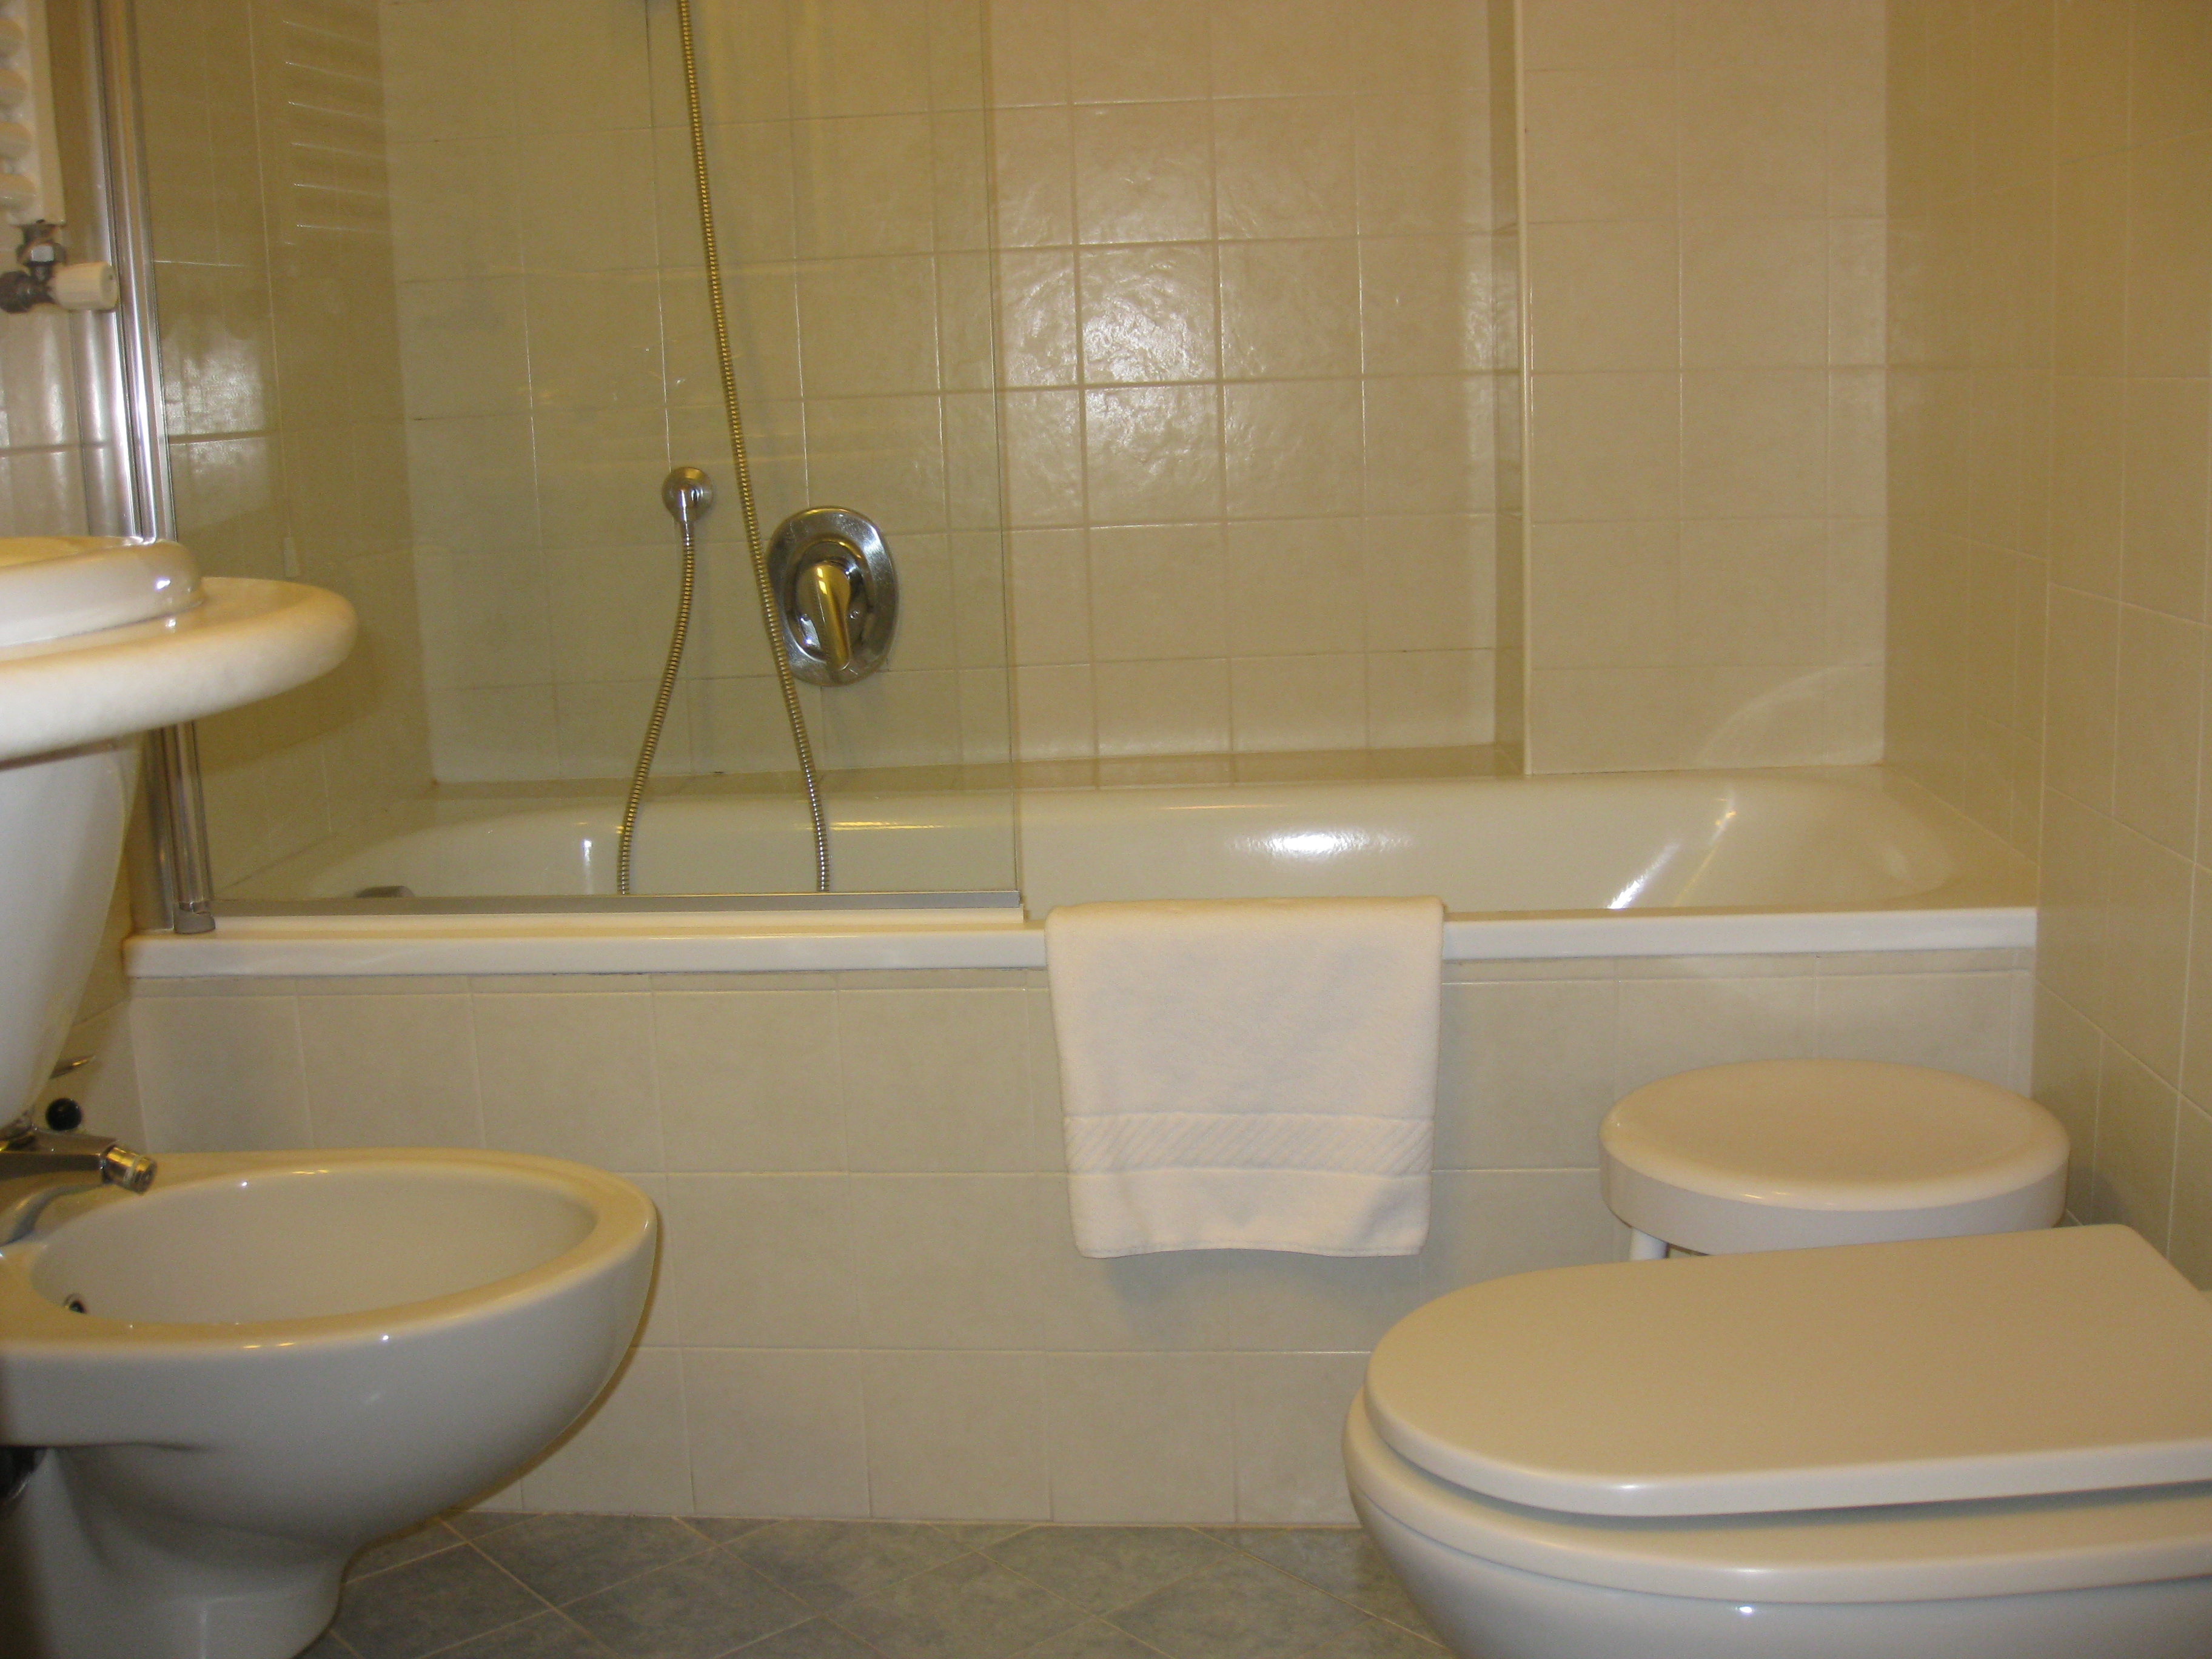 Pictures of bathrooms home design R s design bathroom specialist ltd castleford